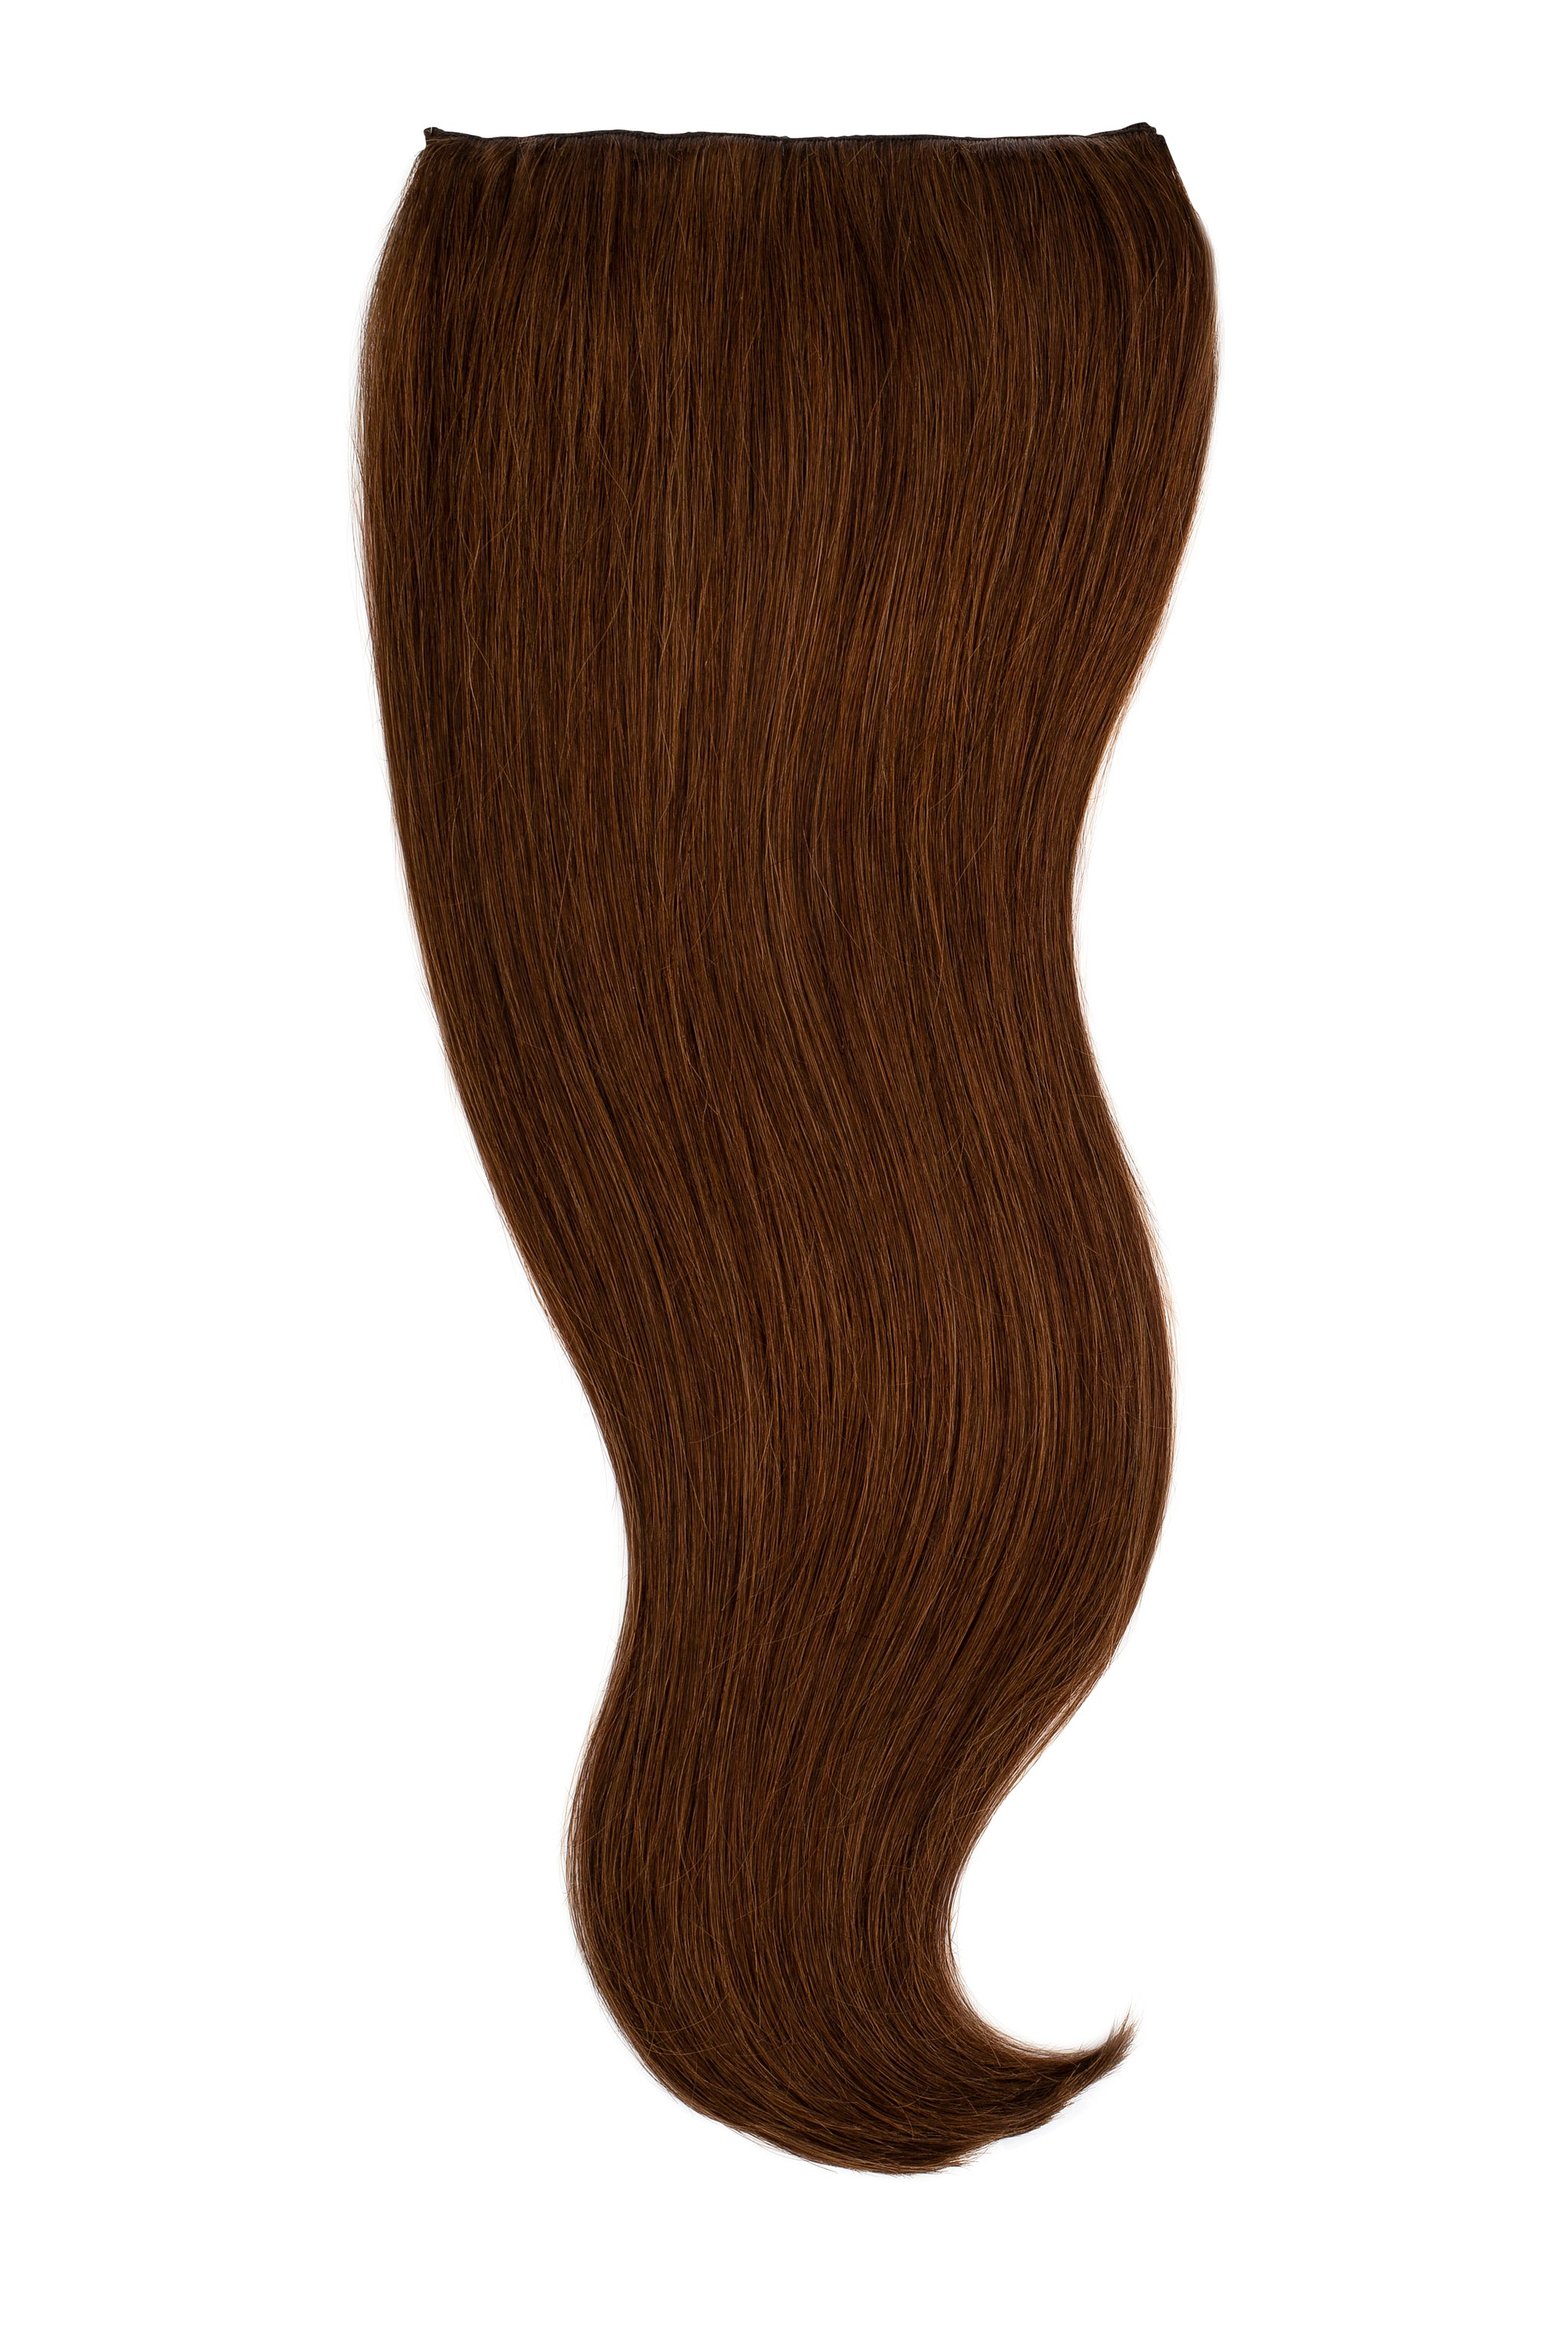 Chocolate Brown Clip In Hair Extensions